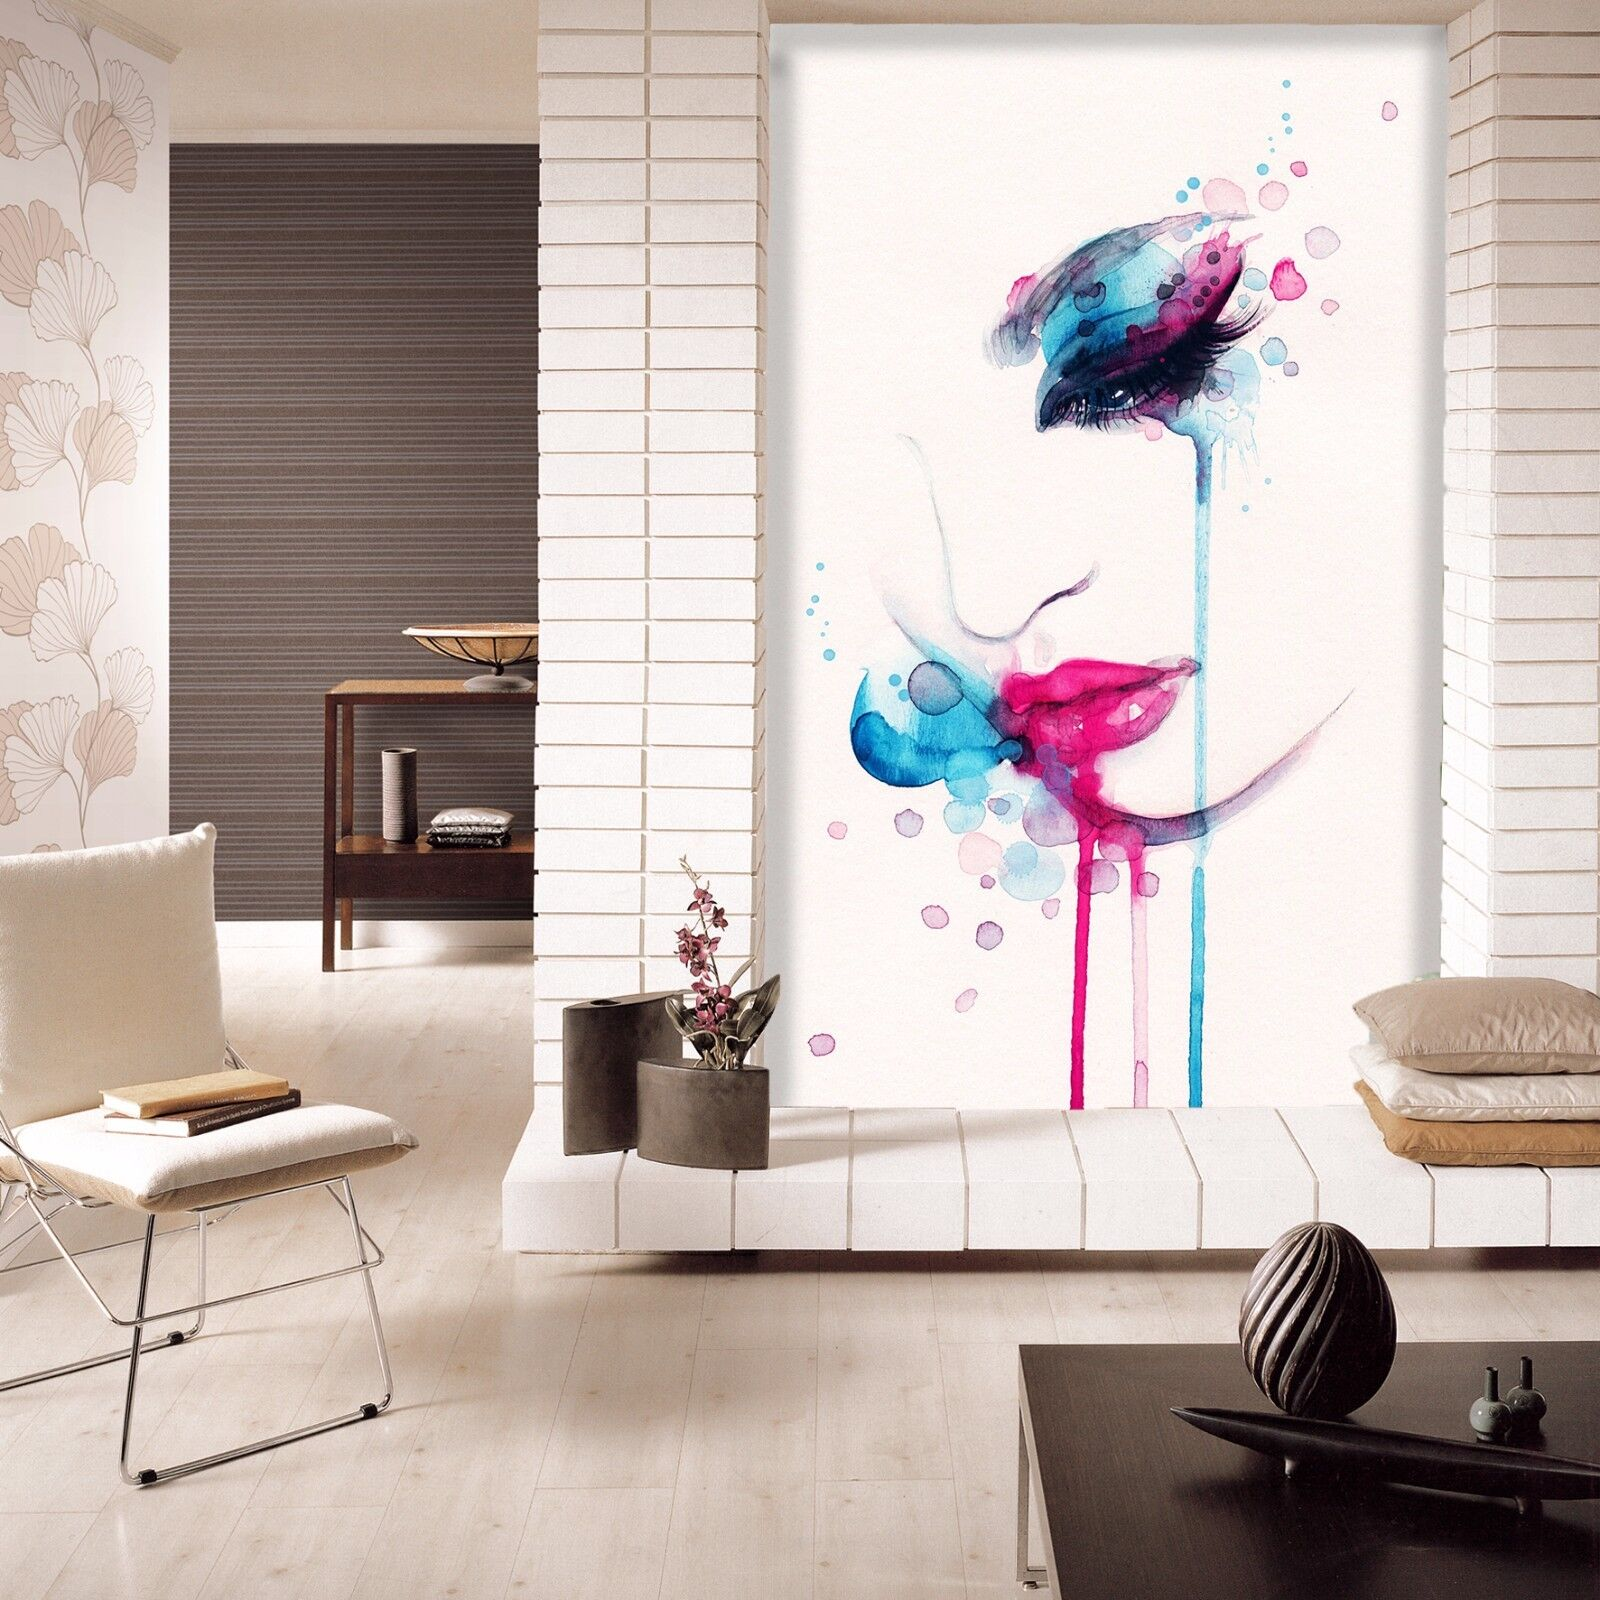 3D Graffiti Makeup Woman 091 Paper Wall Print Wall Decal Wall Deco Indoor Murals